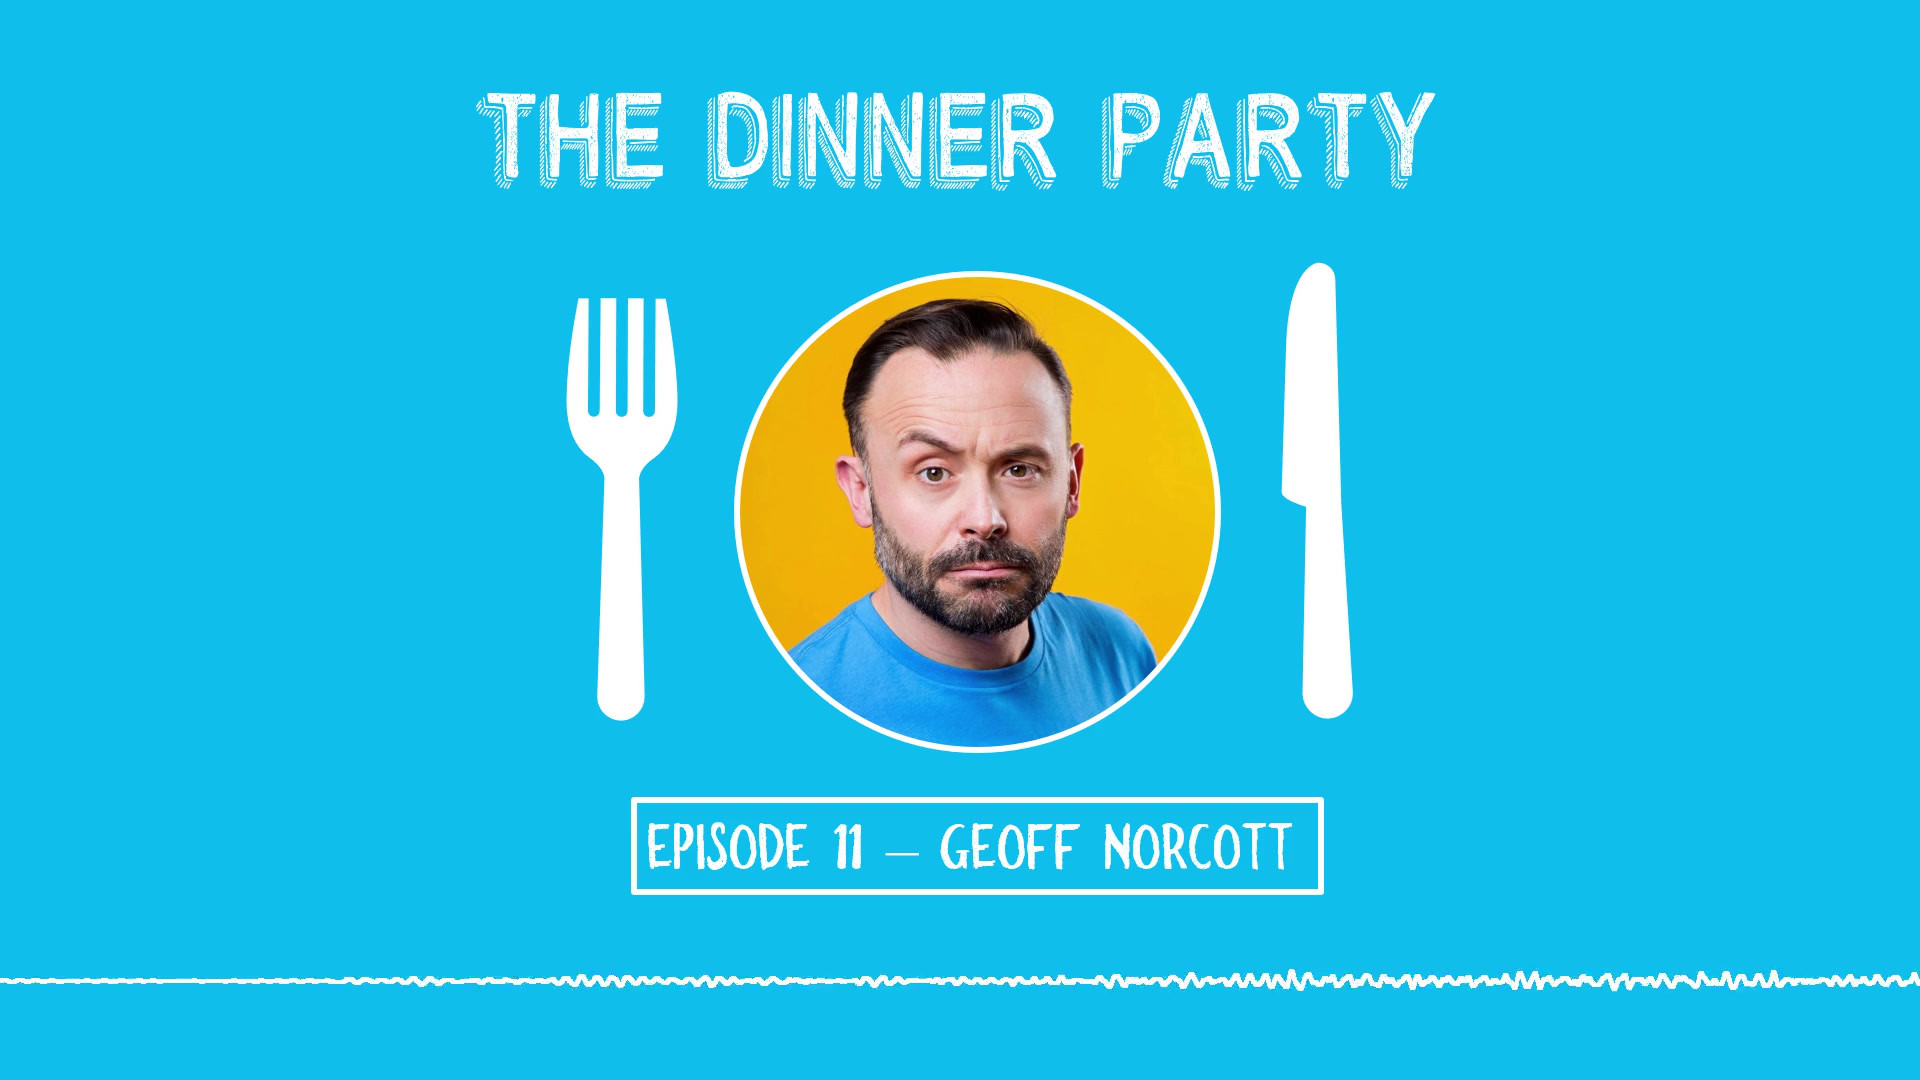 Geoff Norcott on The Dinner Party